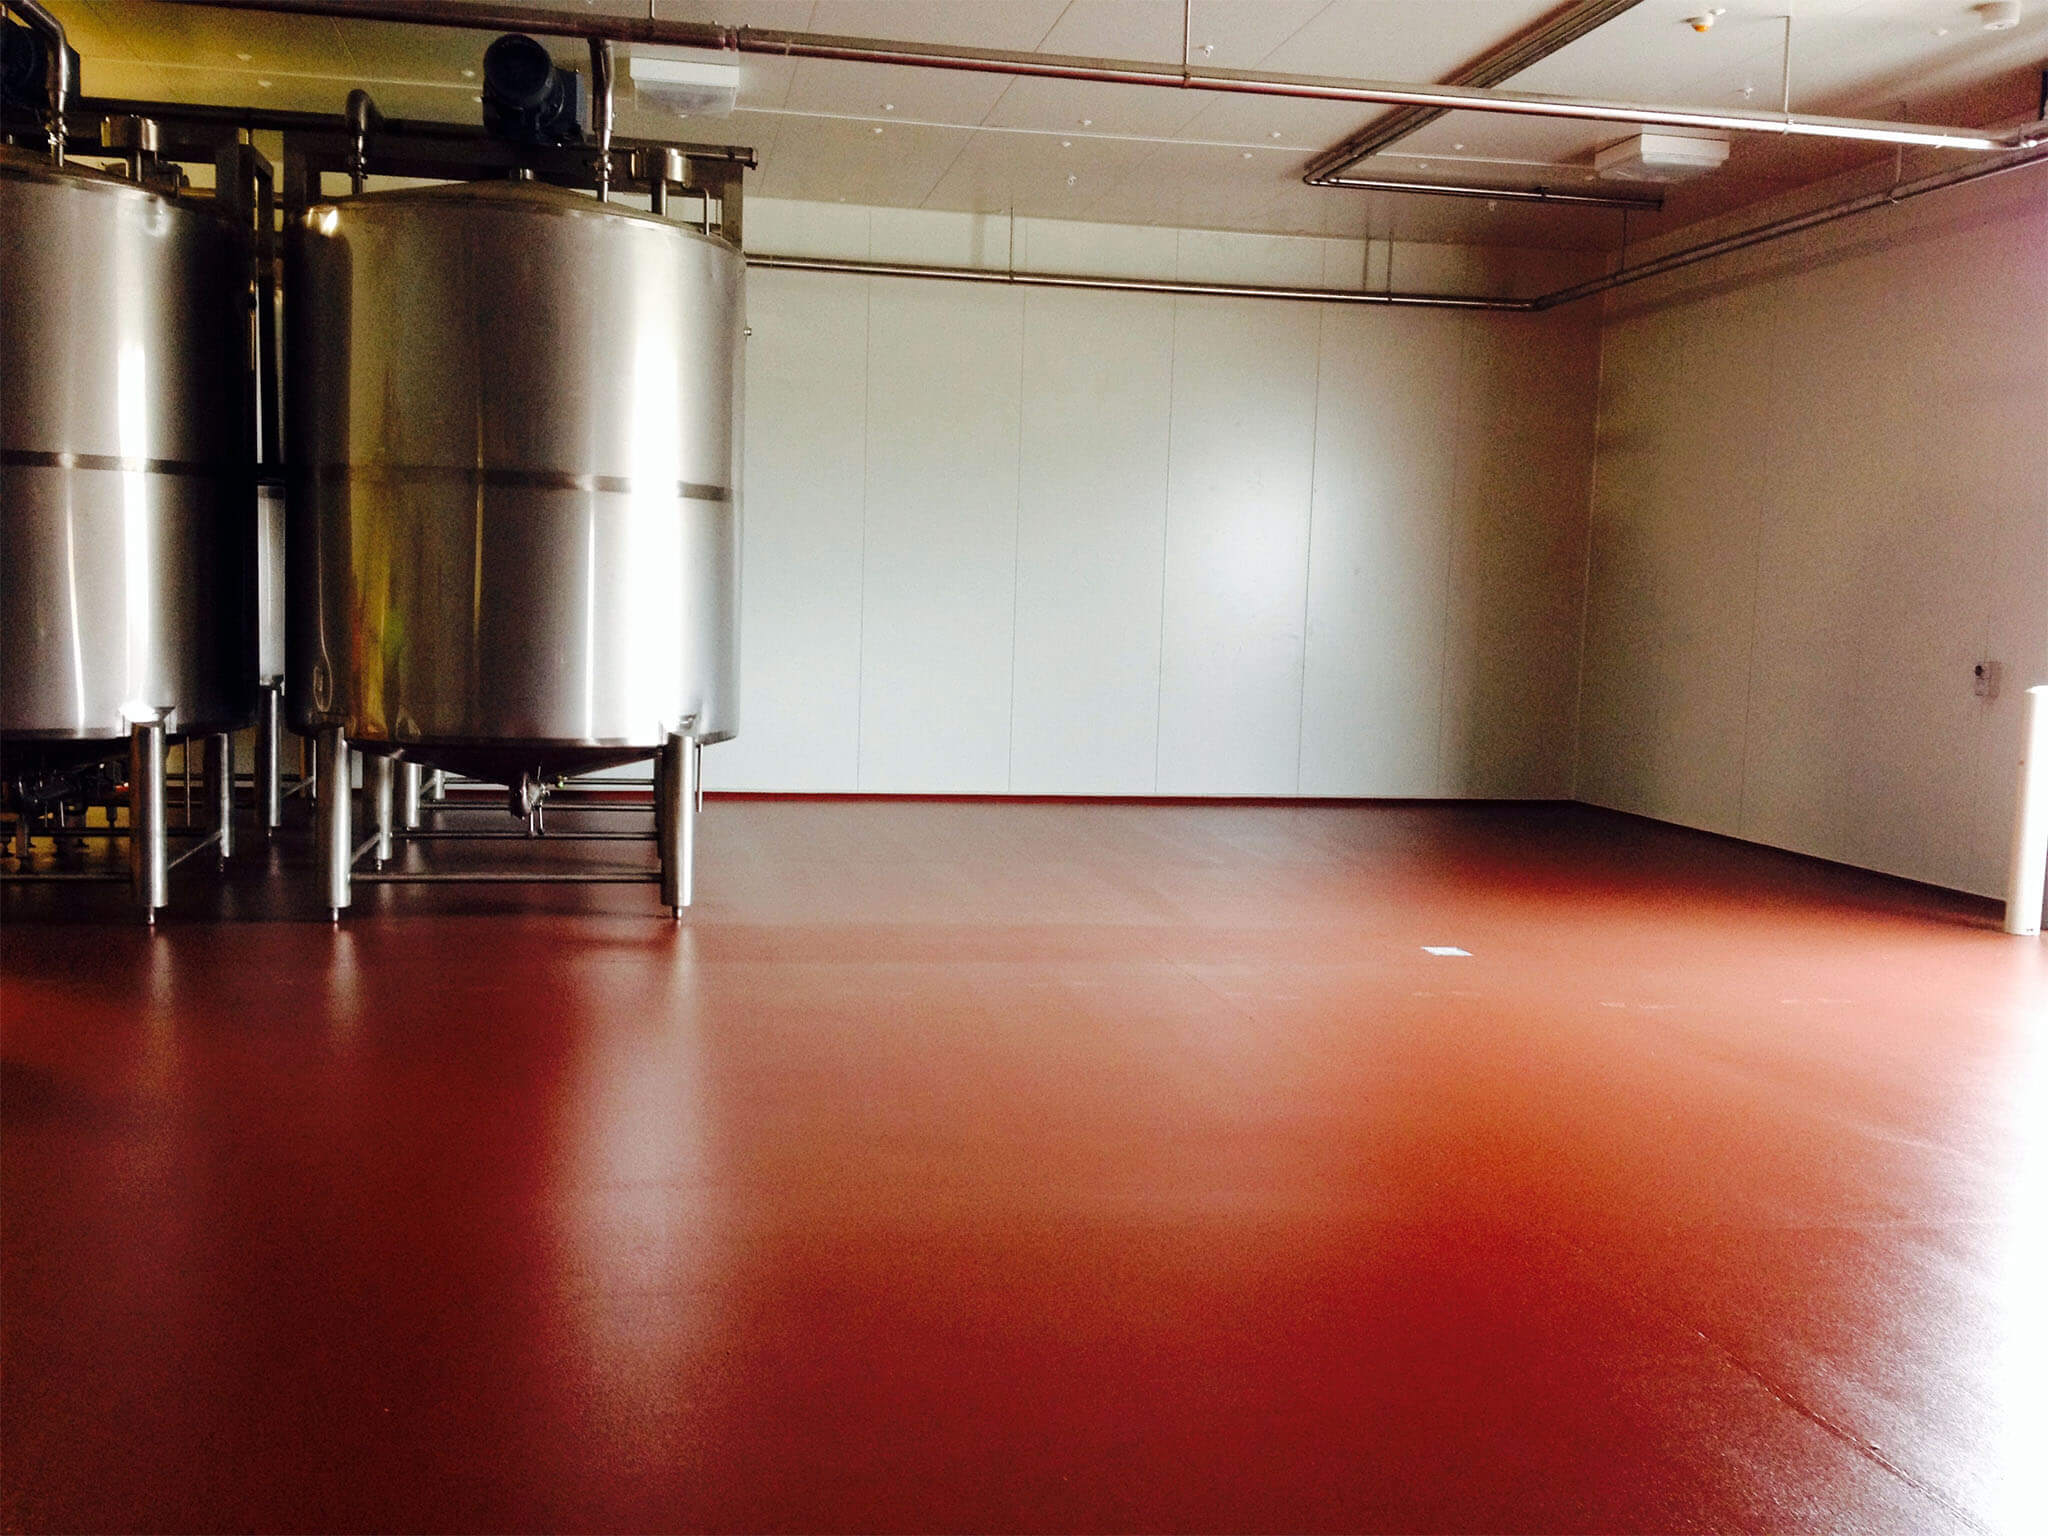 Commercial Flooring option at a chocolate making facility